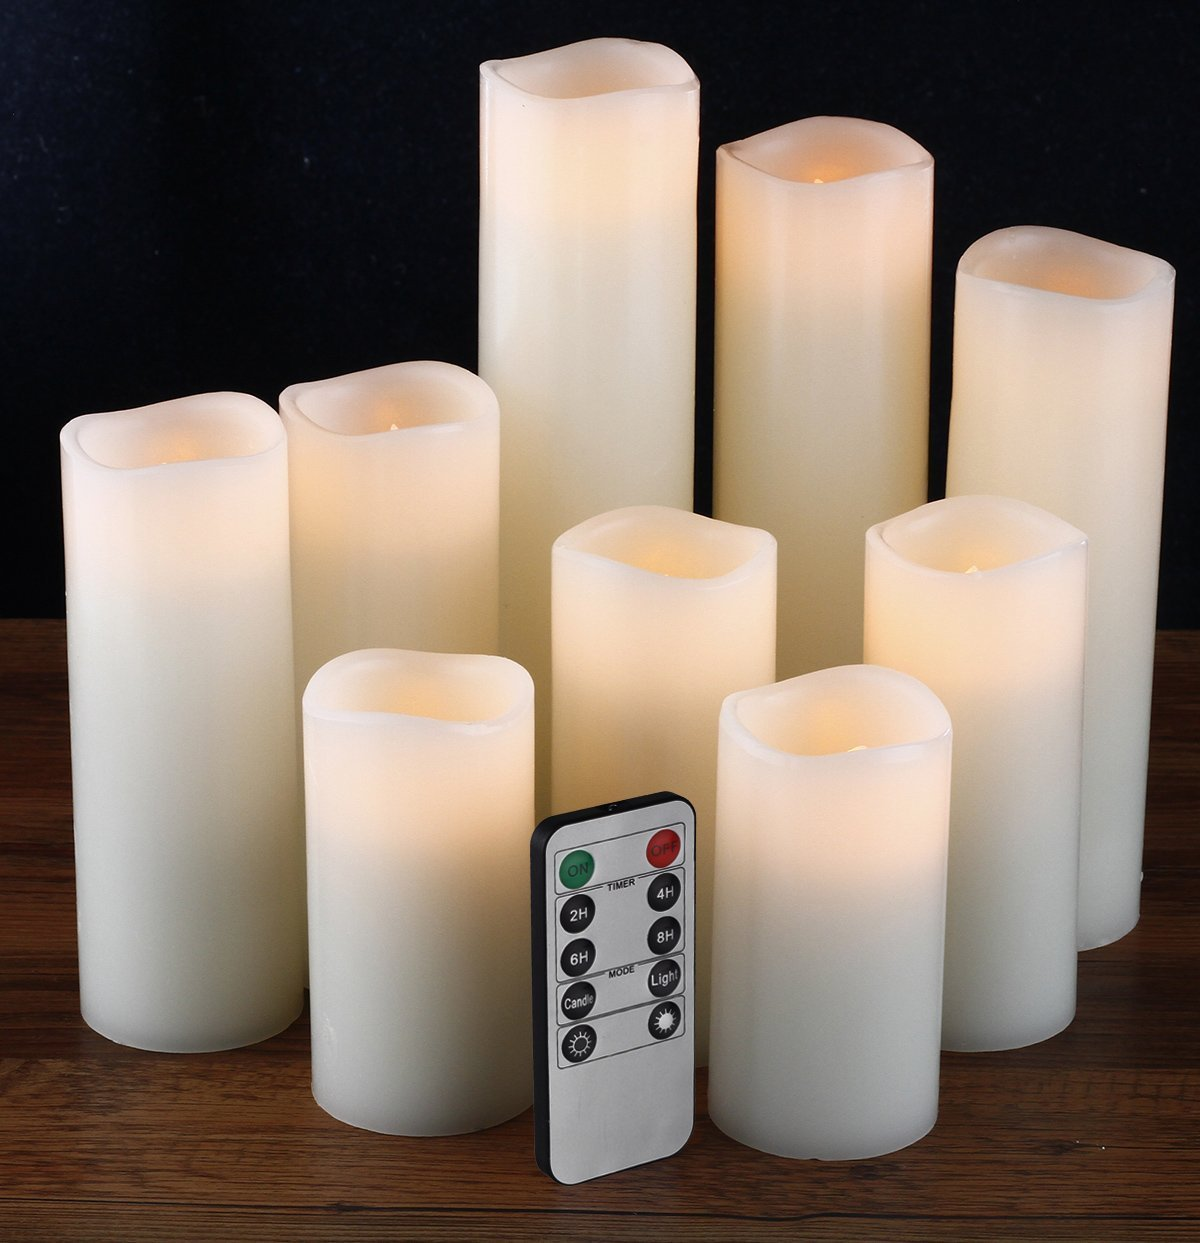 Flameless Candles, Led Candles Set of 9(H 4'' 5'' 6'' 7'' 8'' 9'' xD 2.2'') Ivory Real Wax Battery Candles With Remote Timer by (Batteries not included) by comenzar (Image #2)